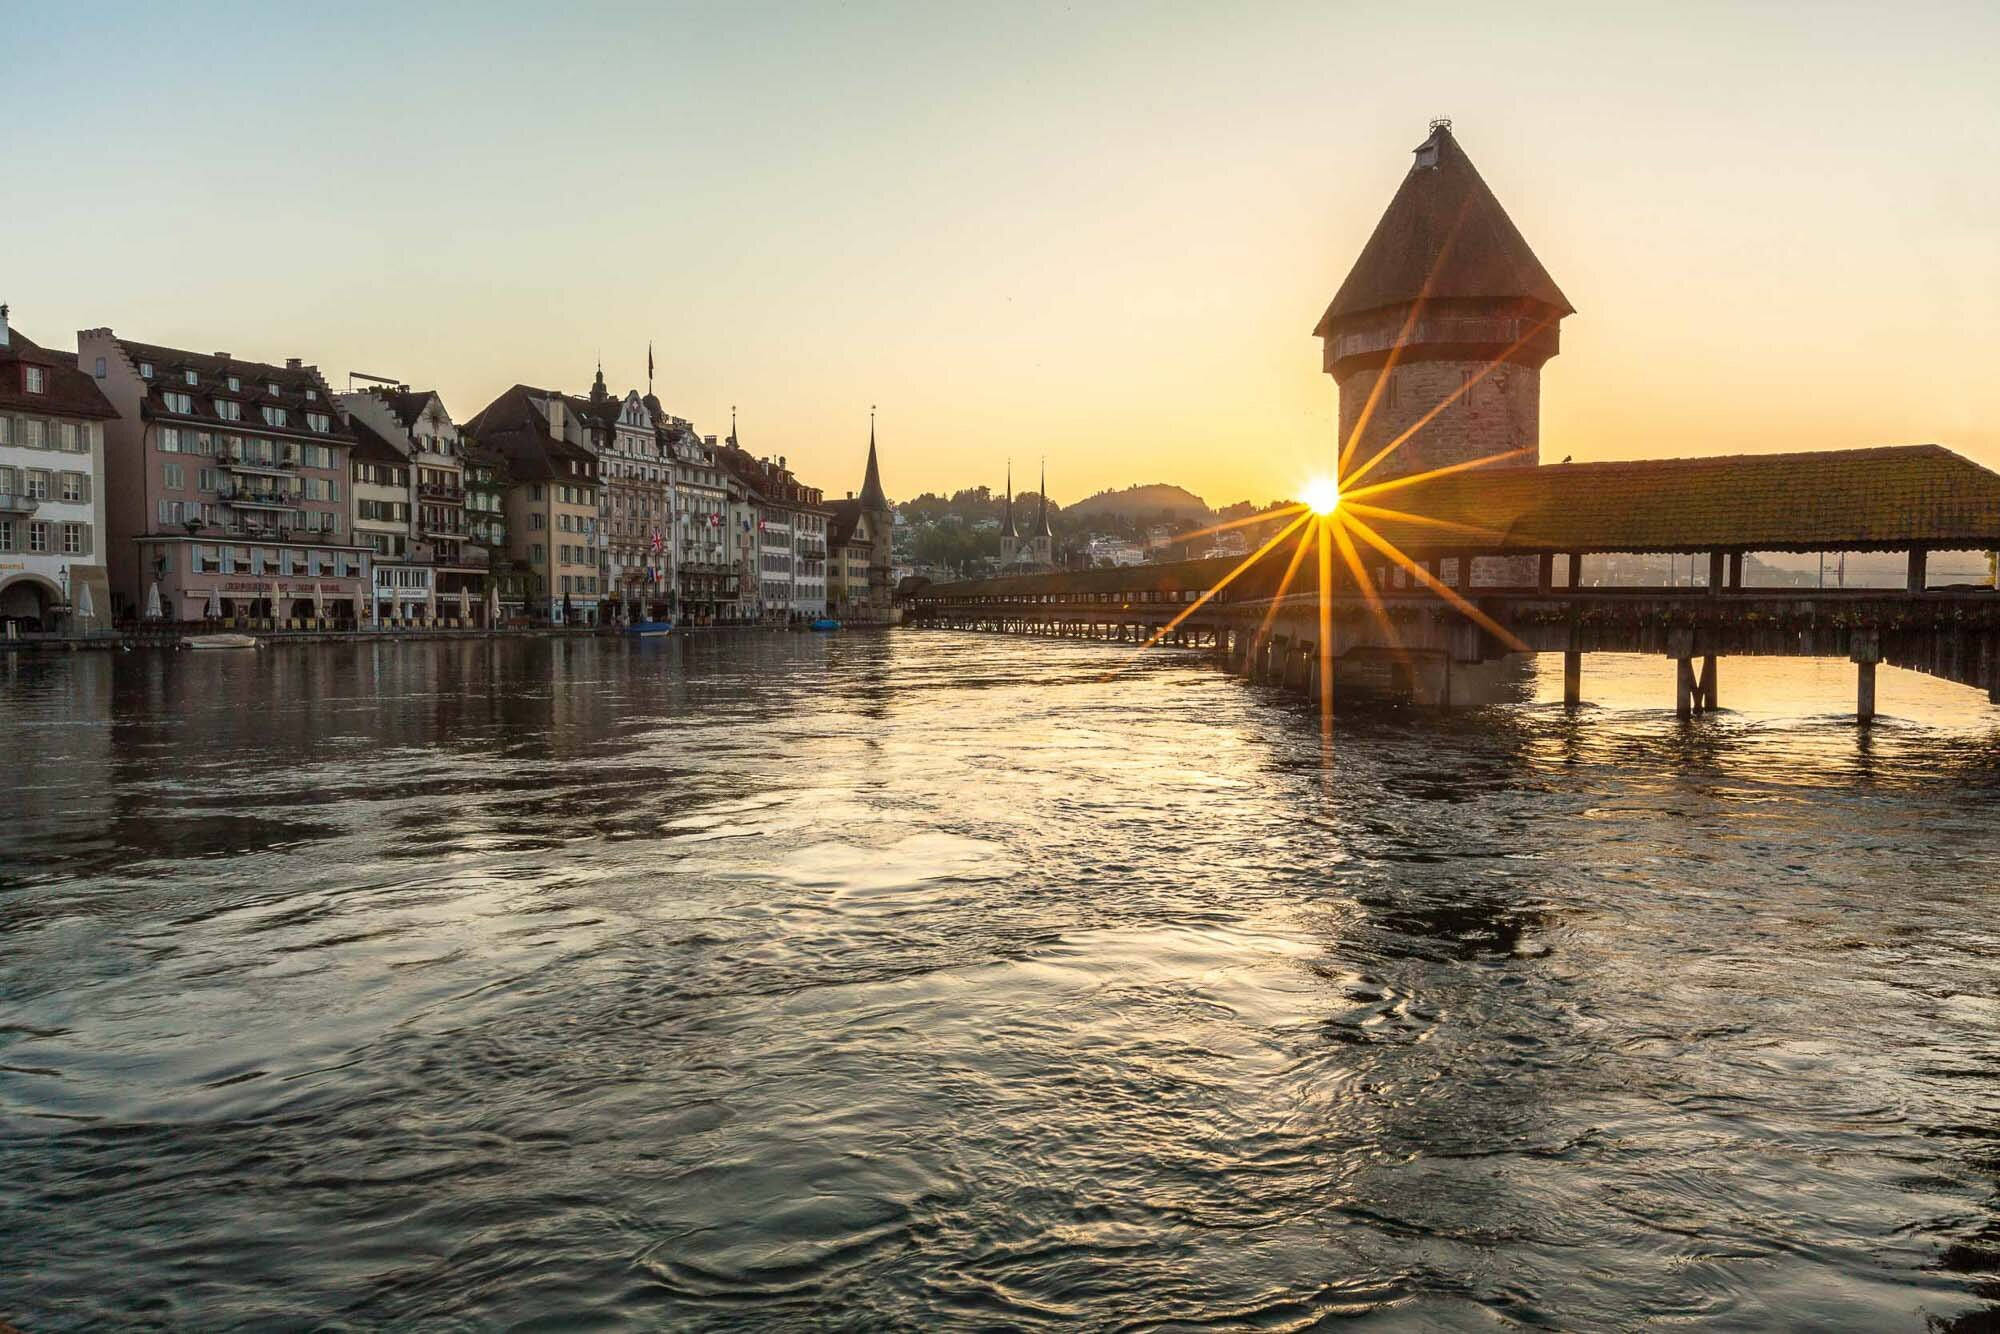 Sunrise over the Kappelbruecke, Lucerne. Copyright by: Switzerland Tourism